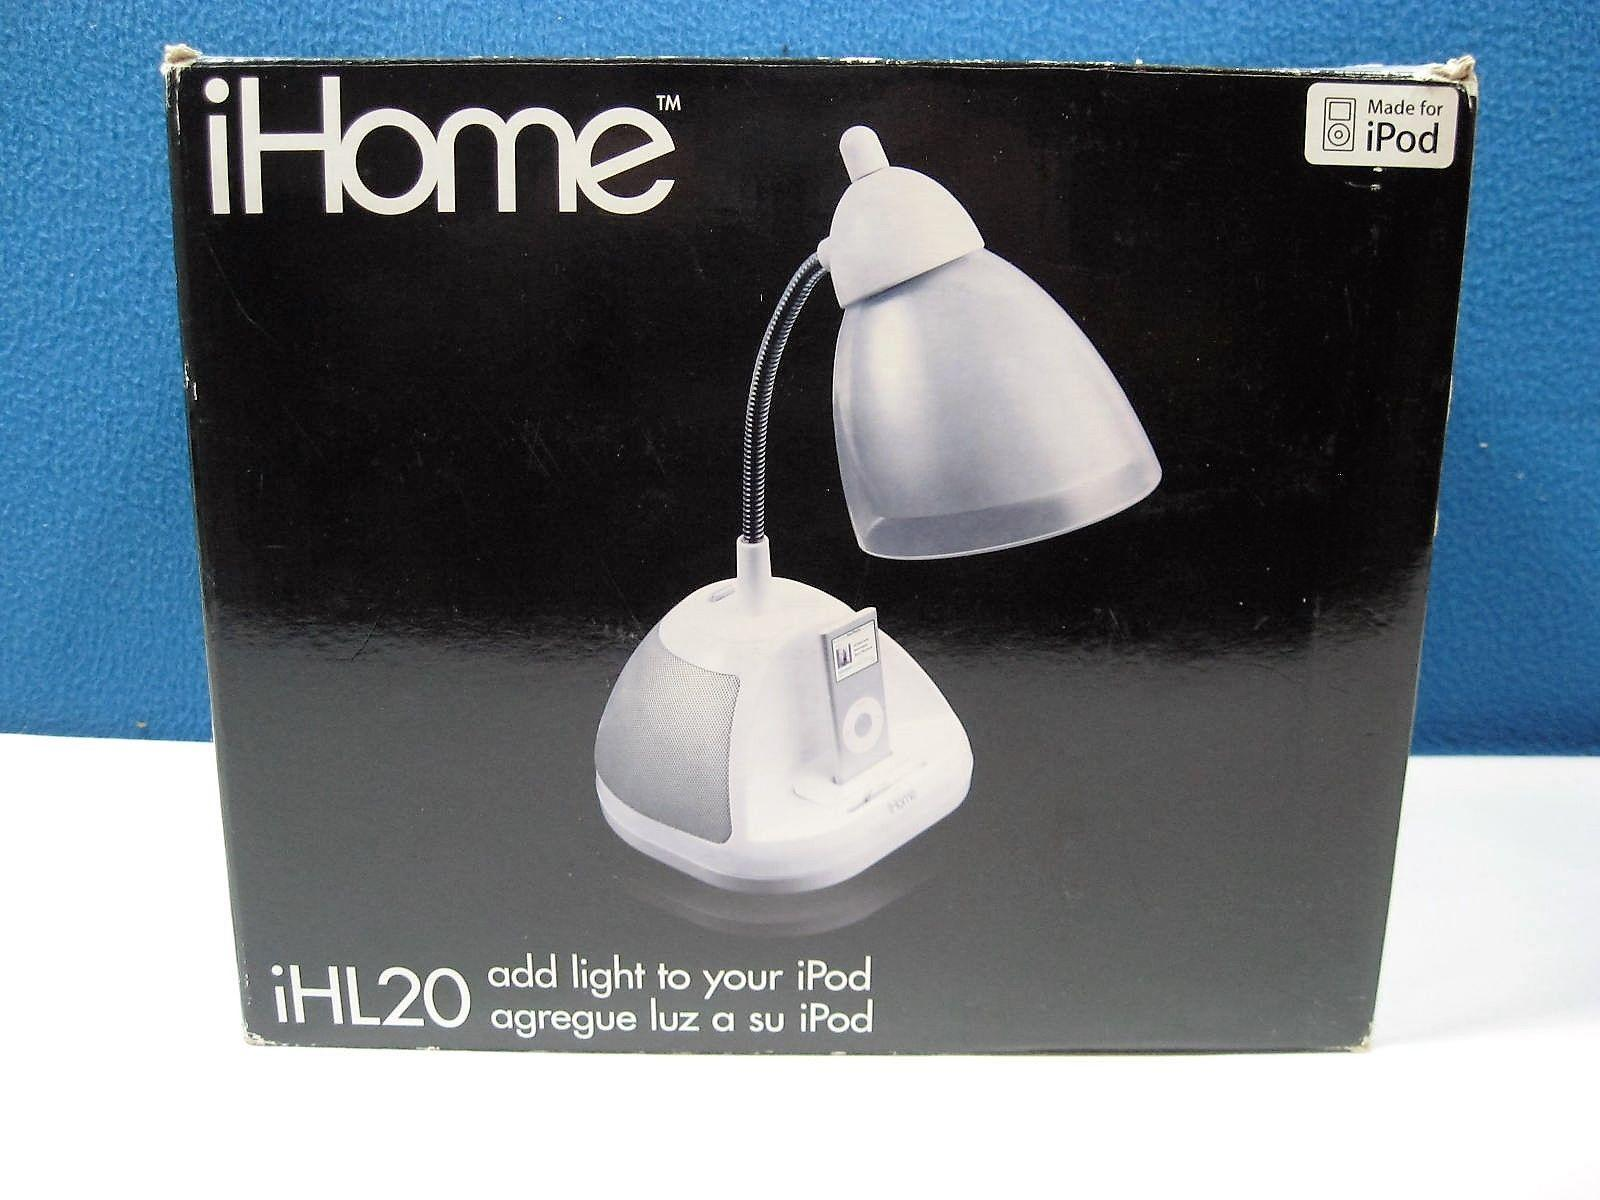 IHome Speaker Lamp Docking Station Ihl20 WhiteSilver